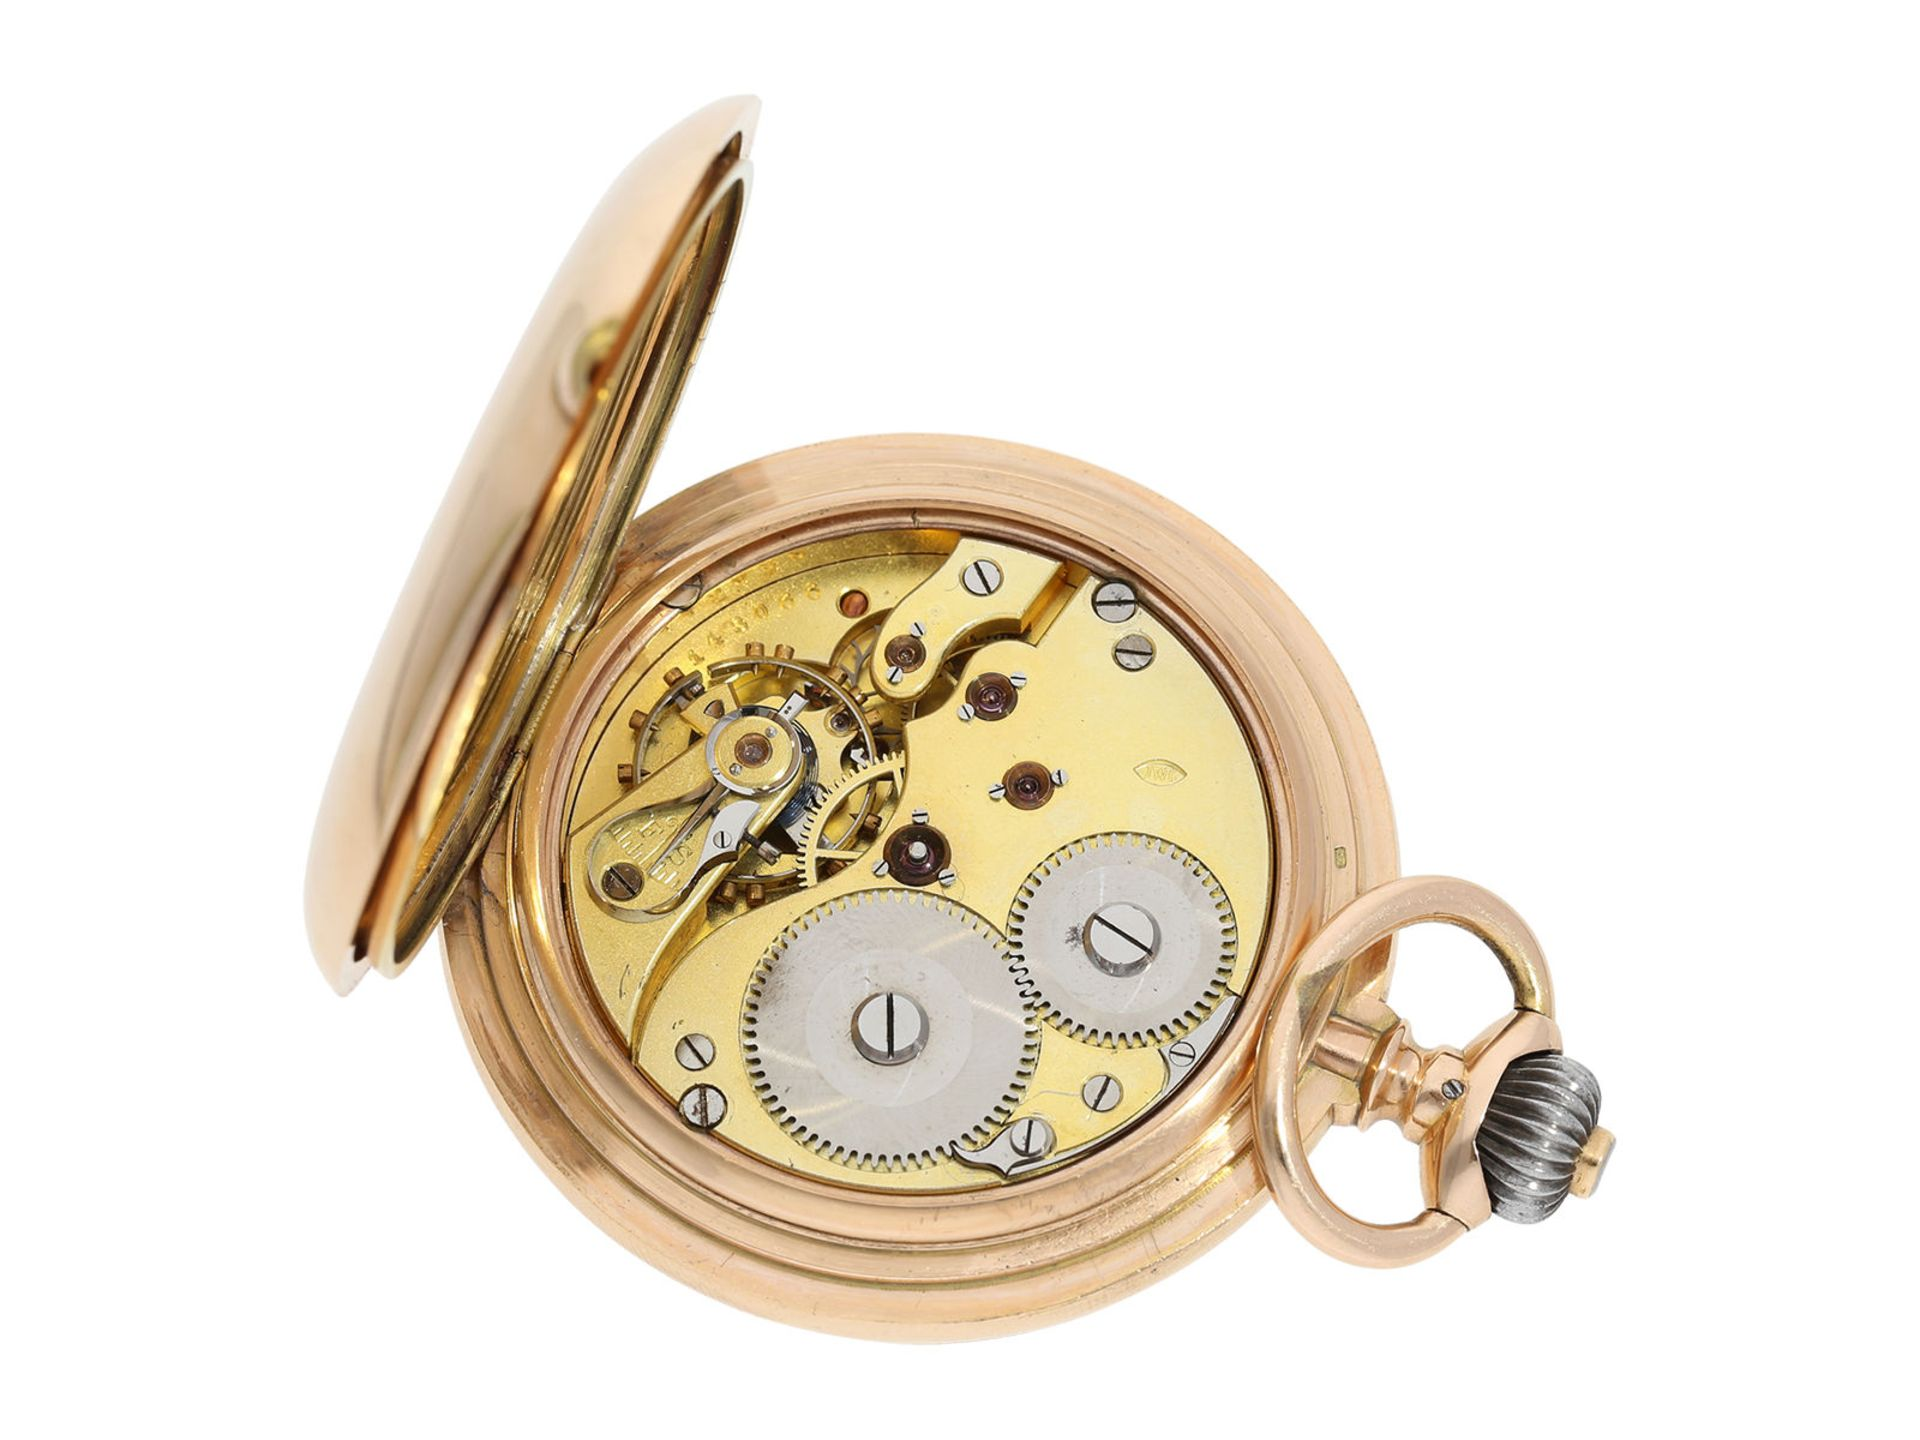 Pocket watch: particularly heavy and large, early pink gold hunting case watch, IWC Schaffhausen, - Bild 3 aus 6